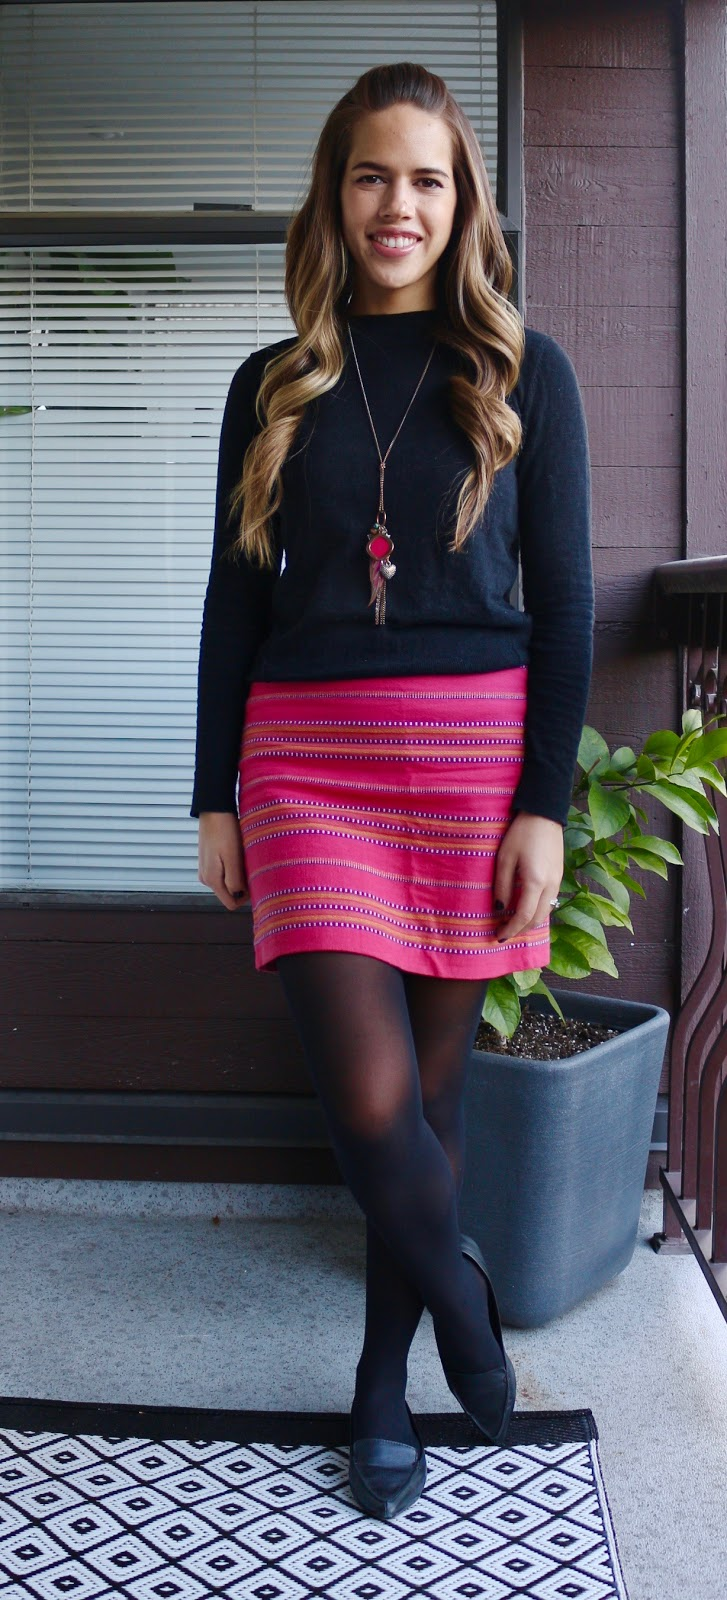 Jules in Flats - Striped Mini Skirt for Work